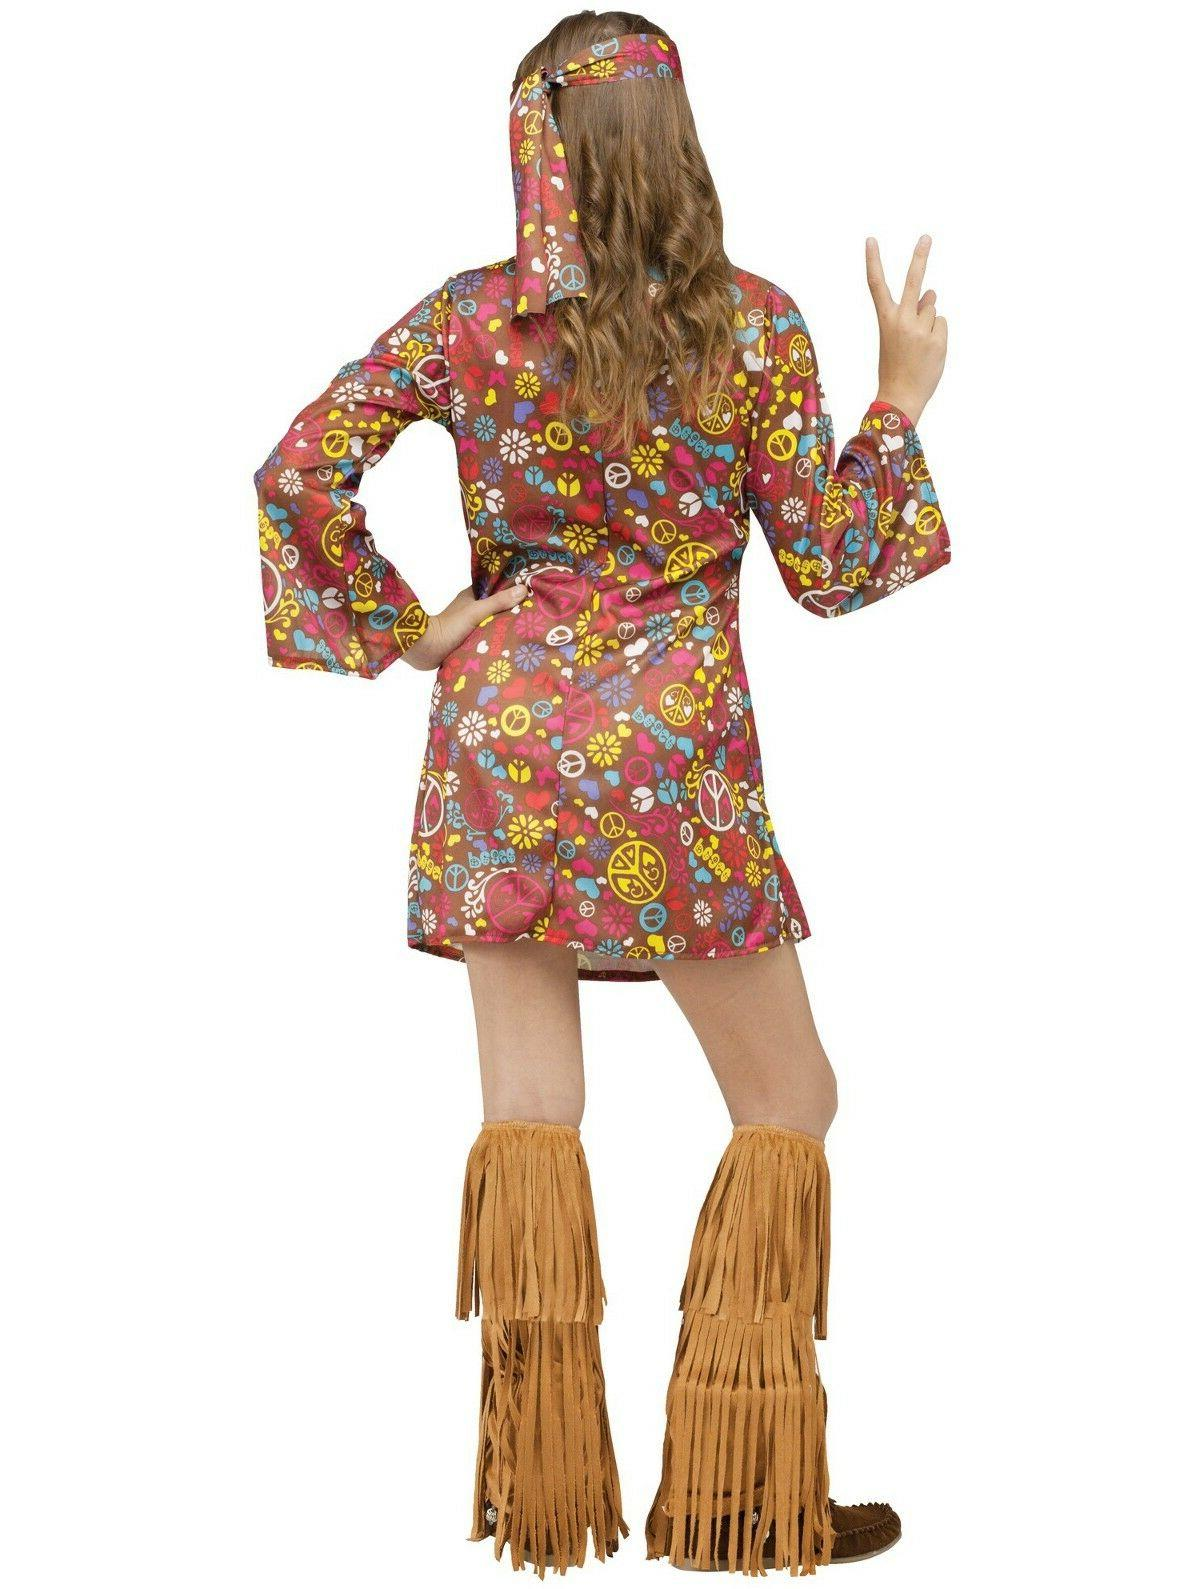 Peace and Love Hippie Groovy 60's Costume